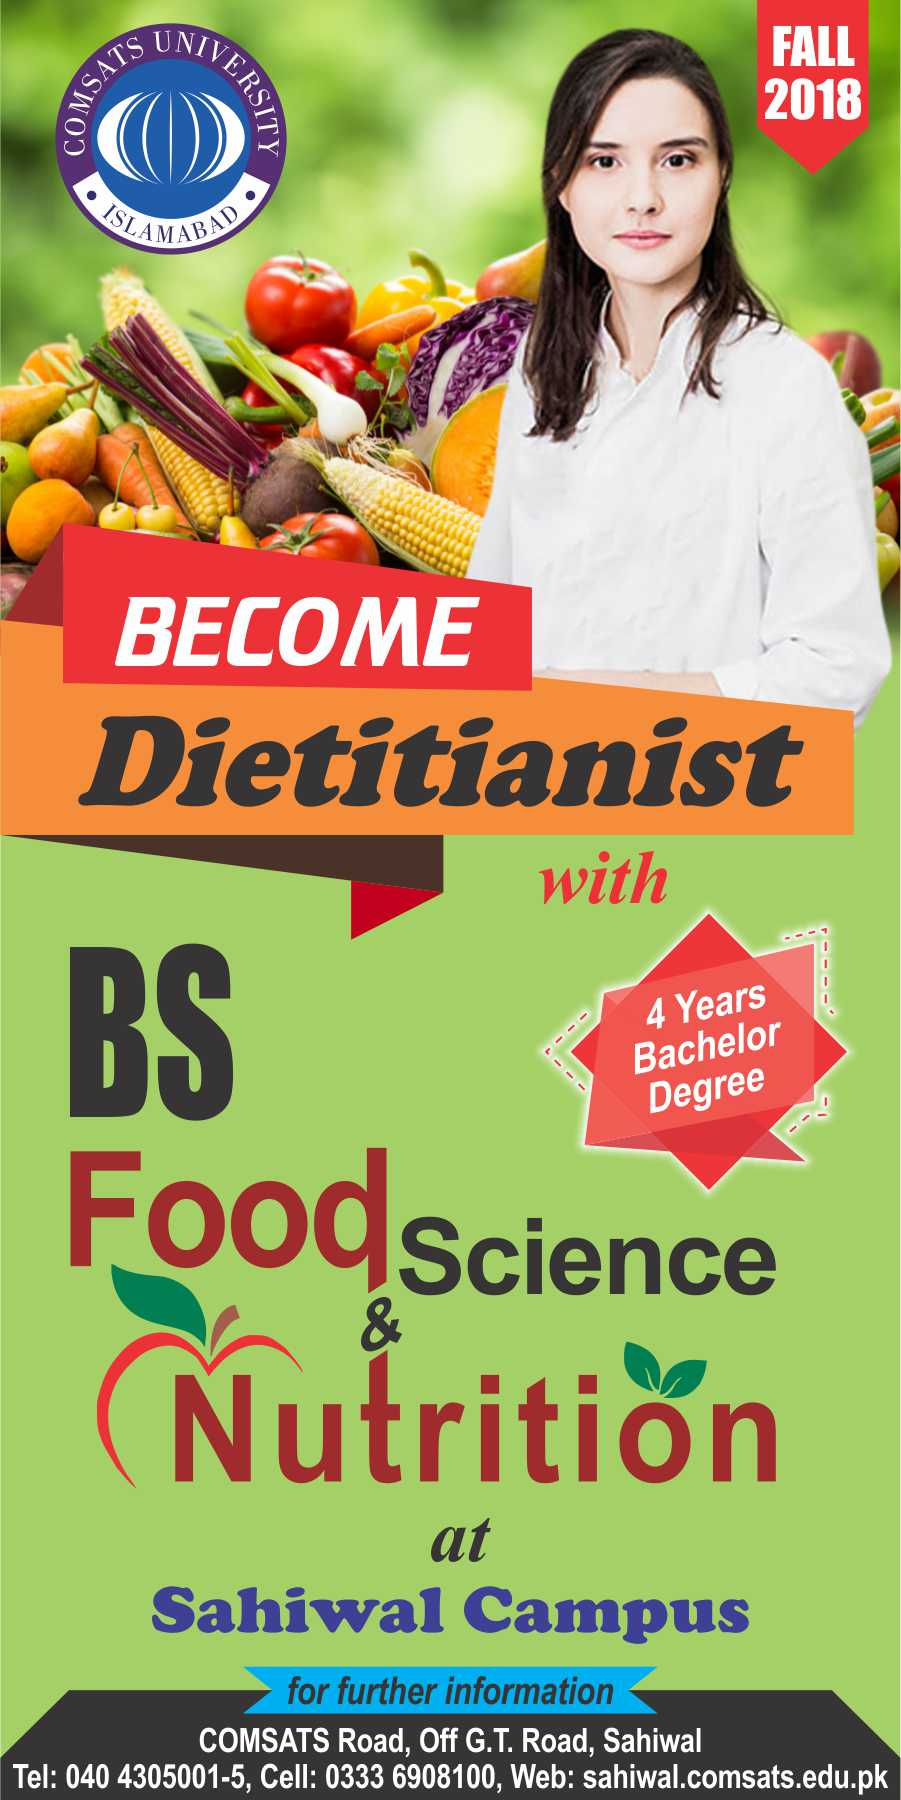 Bachelor of Science in Food Science and Nutrition